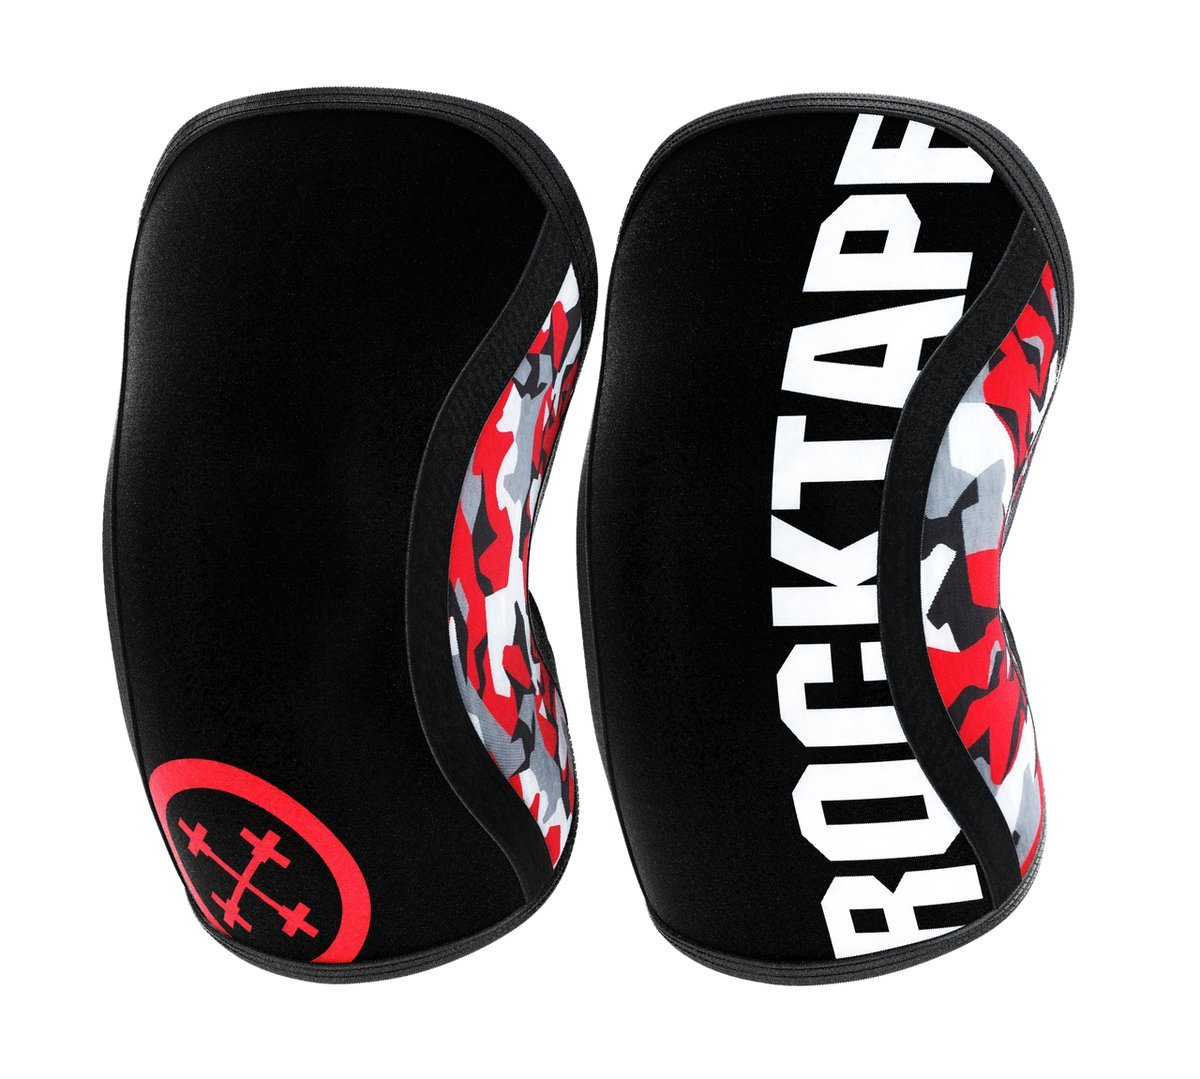 Rocktape Assassins 5mm Knee Sleeves (2 Sleeves), Small (Fits 11.5-13.5 Inches), Red Camo